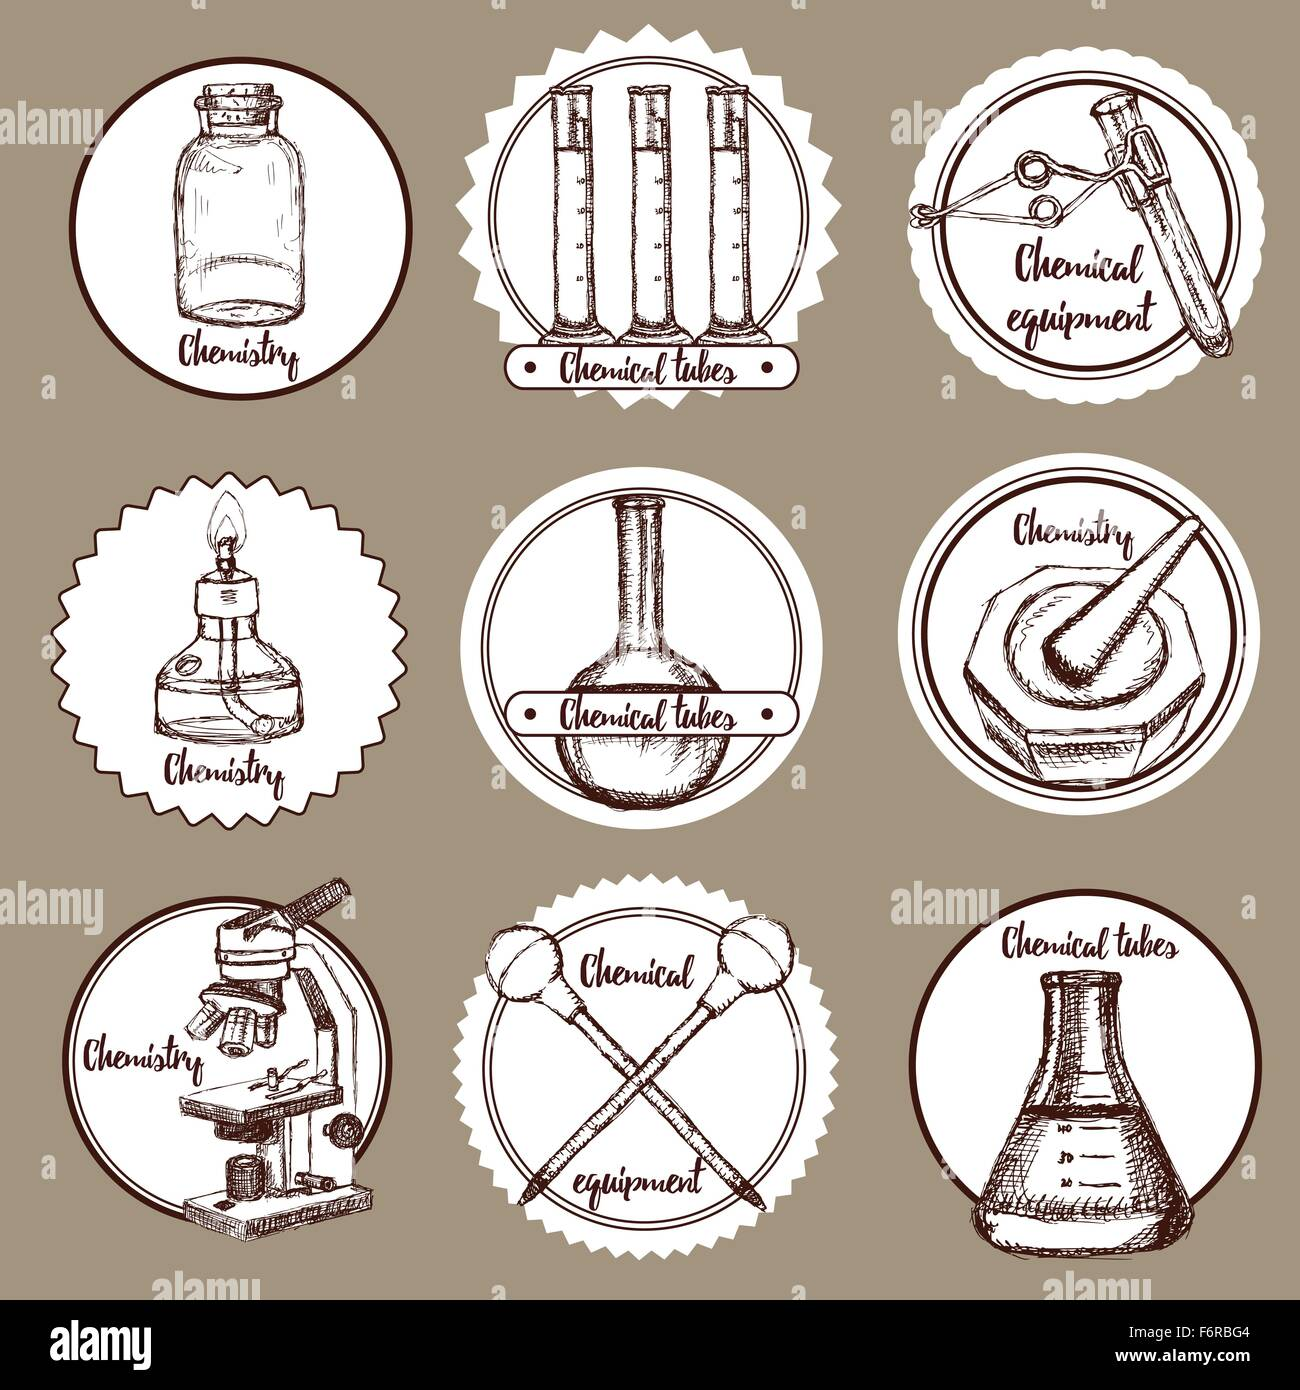 Sketch chemical logotypes in vintage style, vector - Stock Image